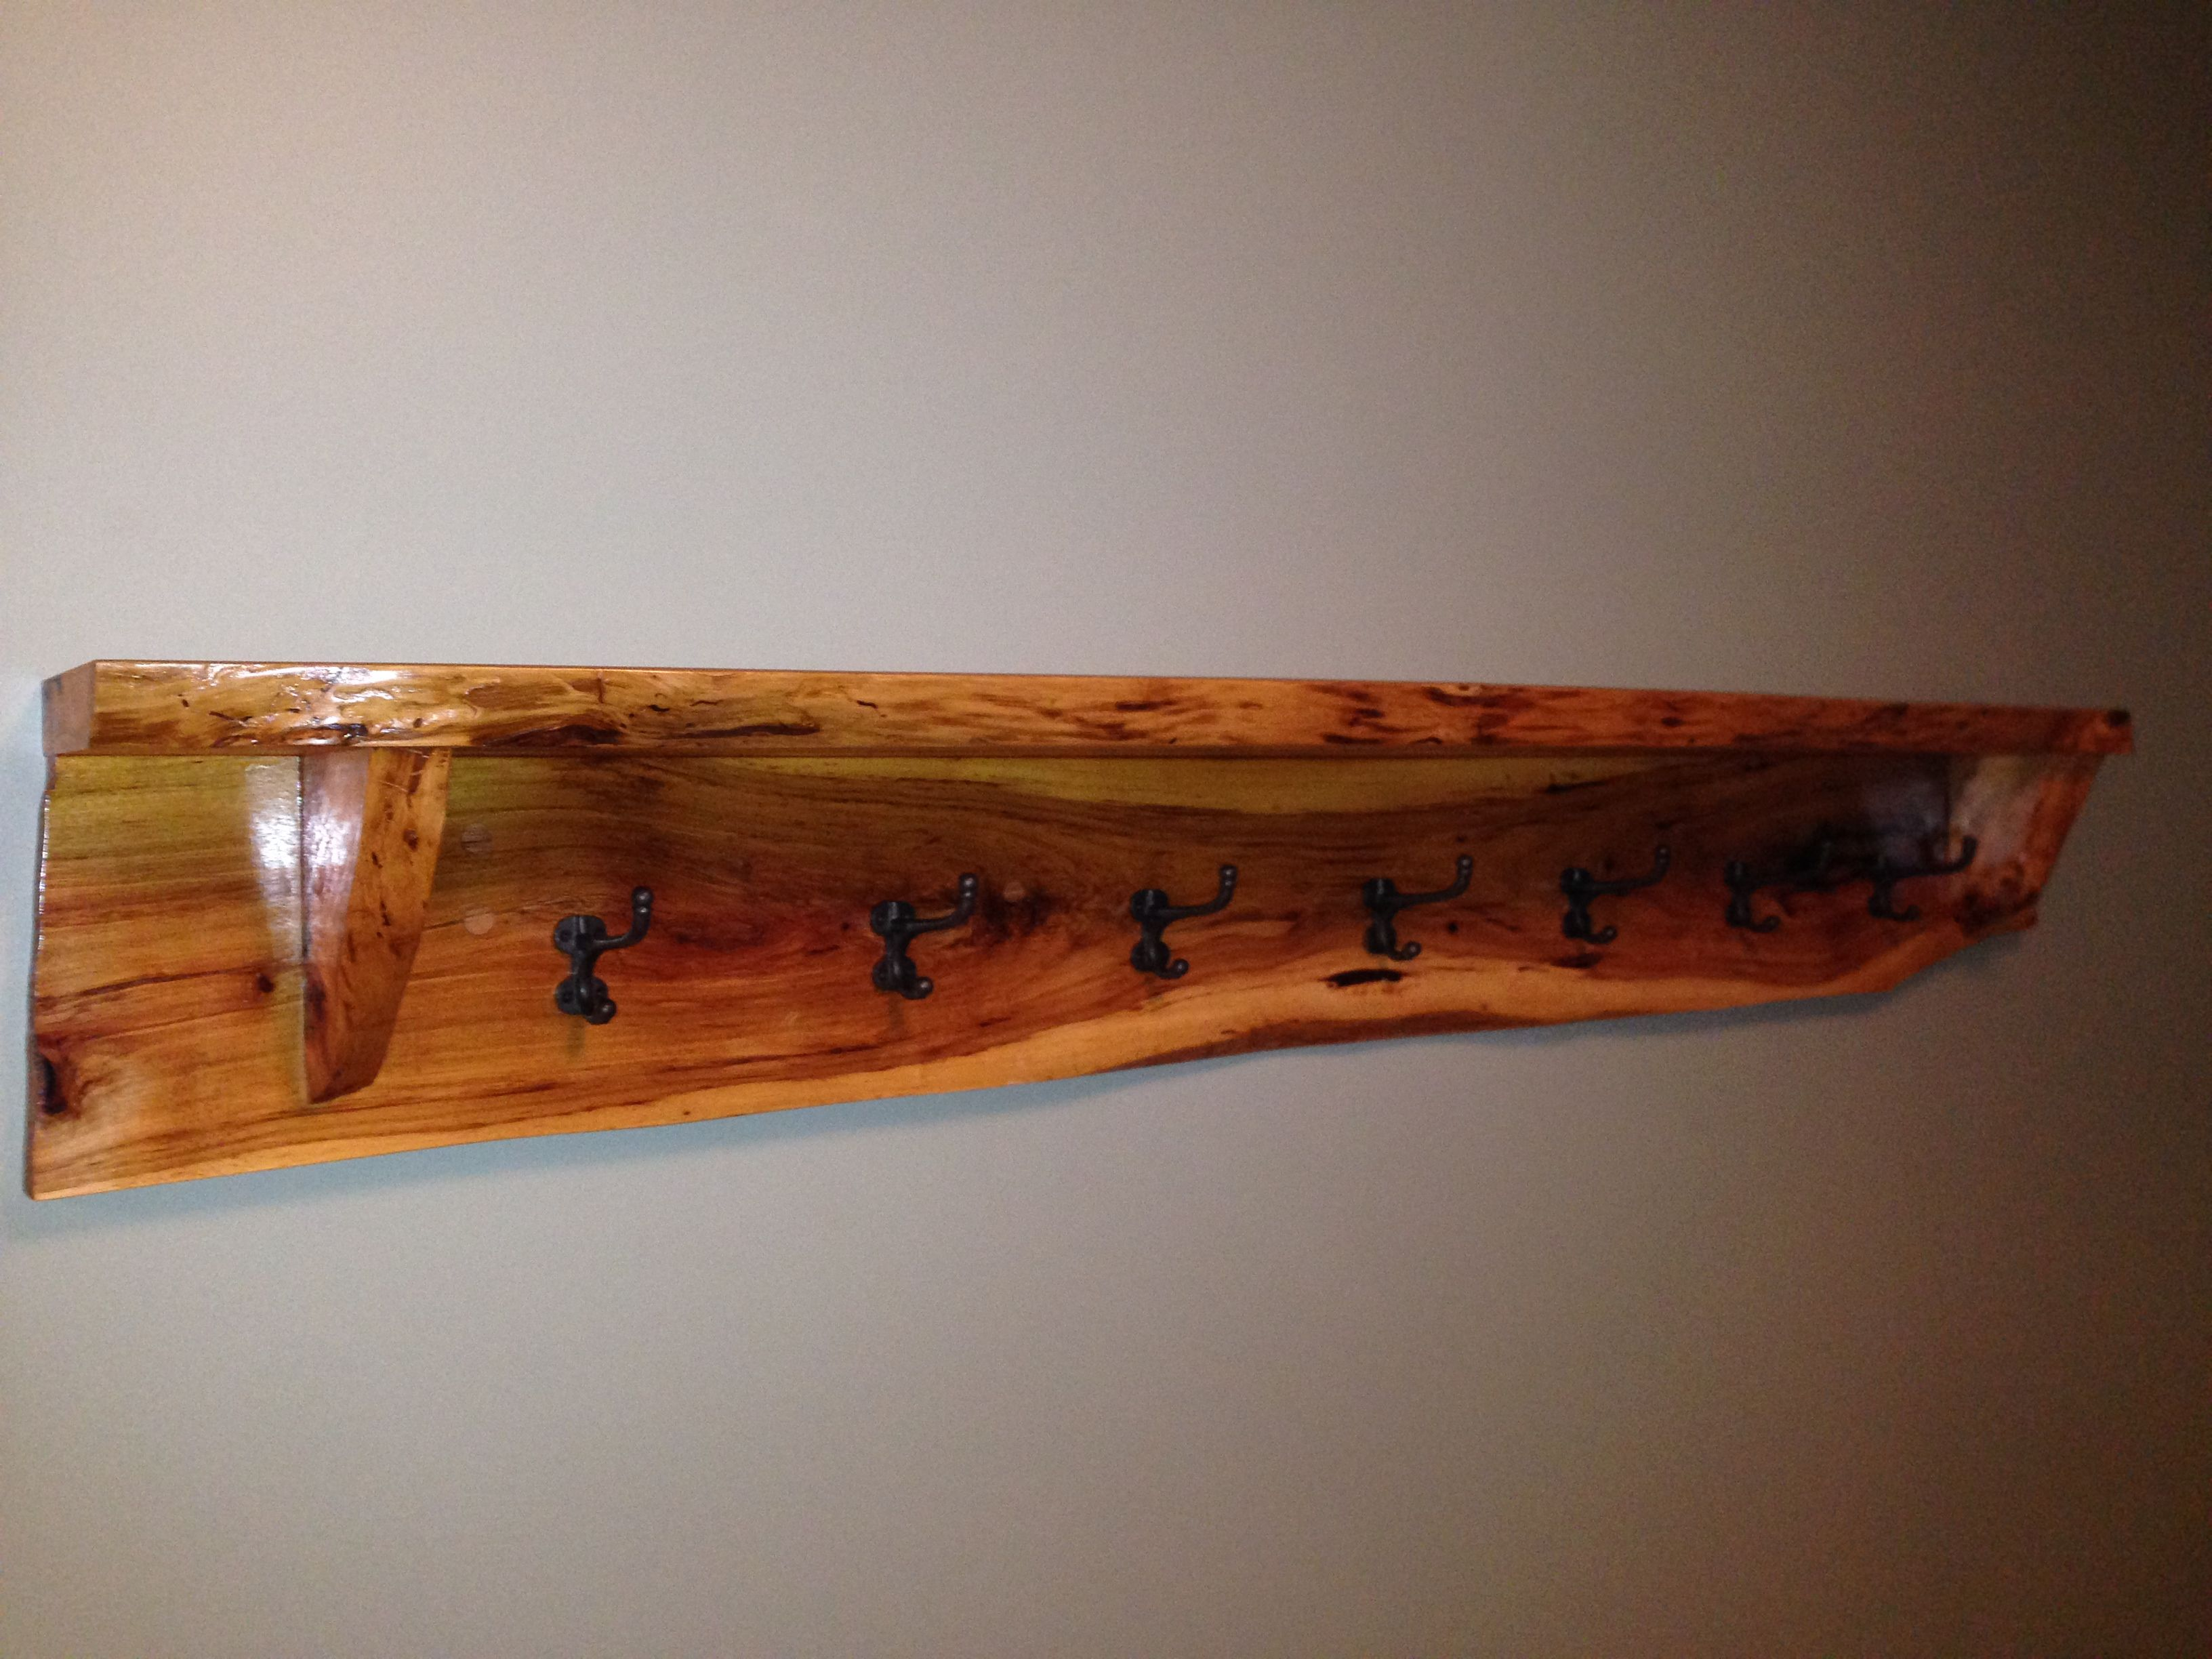 Handmade Live Edge Hickory Shelf Coat Rack By Black Swamp